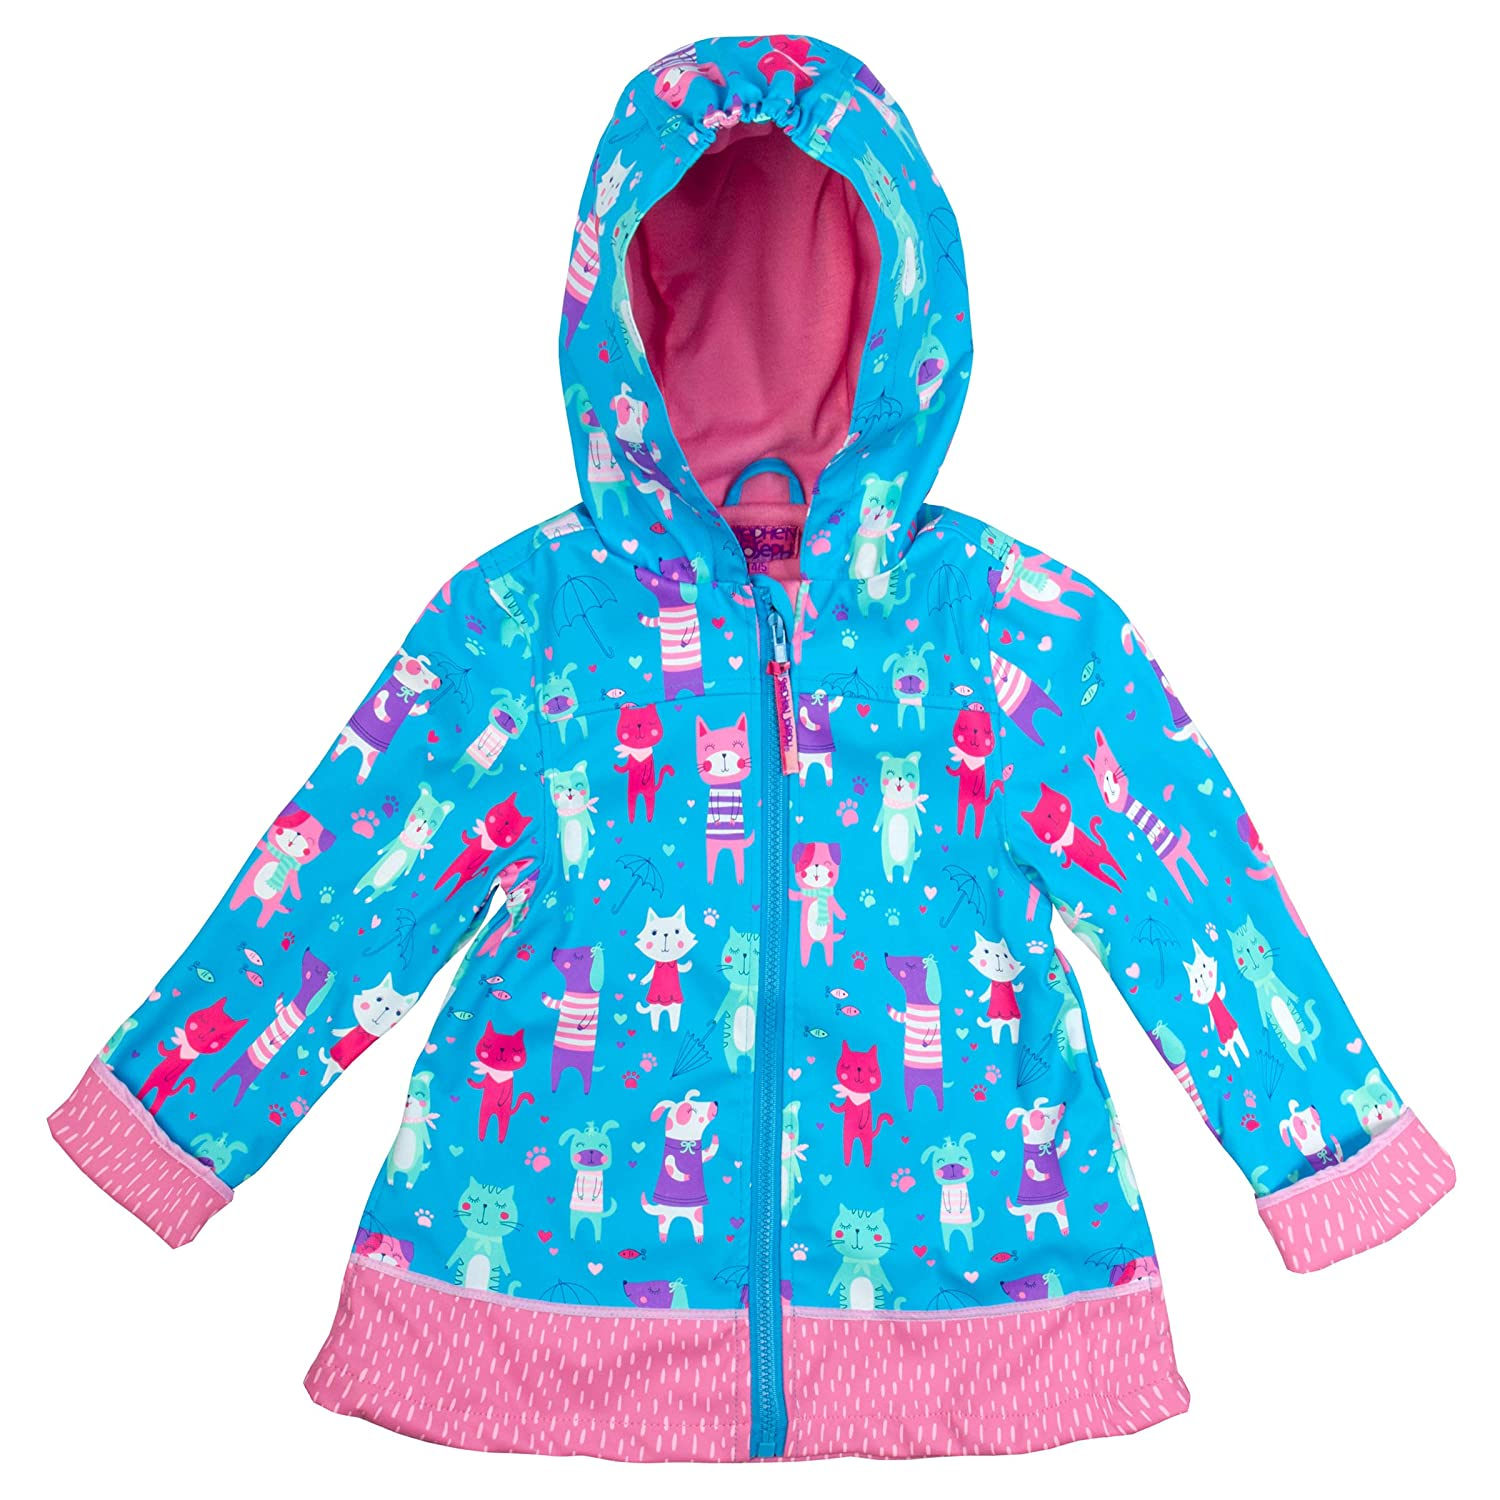 Cats and Dogs 6x Cats and Dogs 6x Stephen Joseph Unisex Kid's All Over All Over Print Raincoat, Cats and Dogs